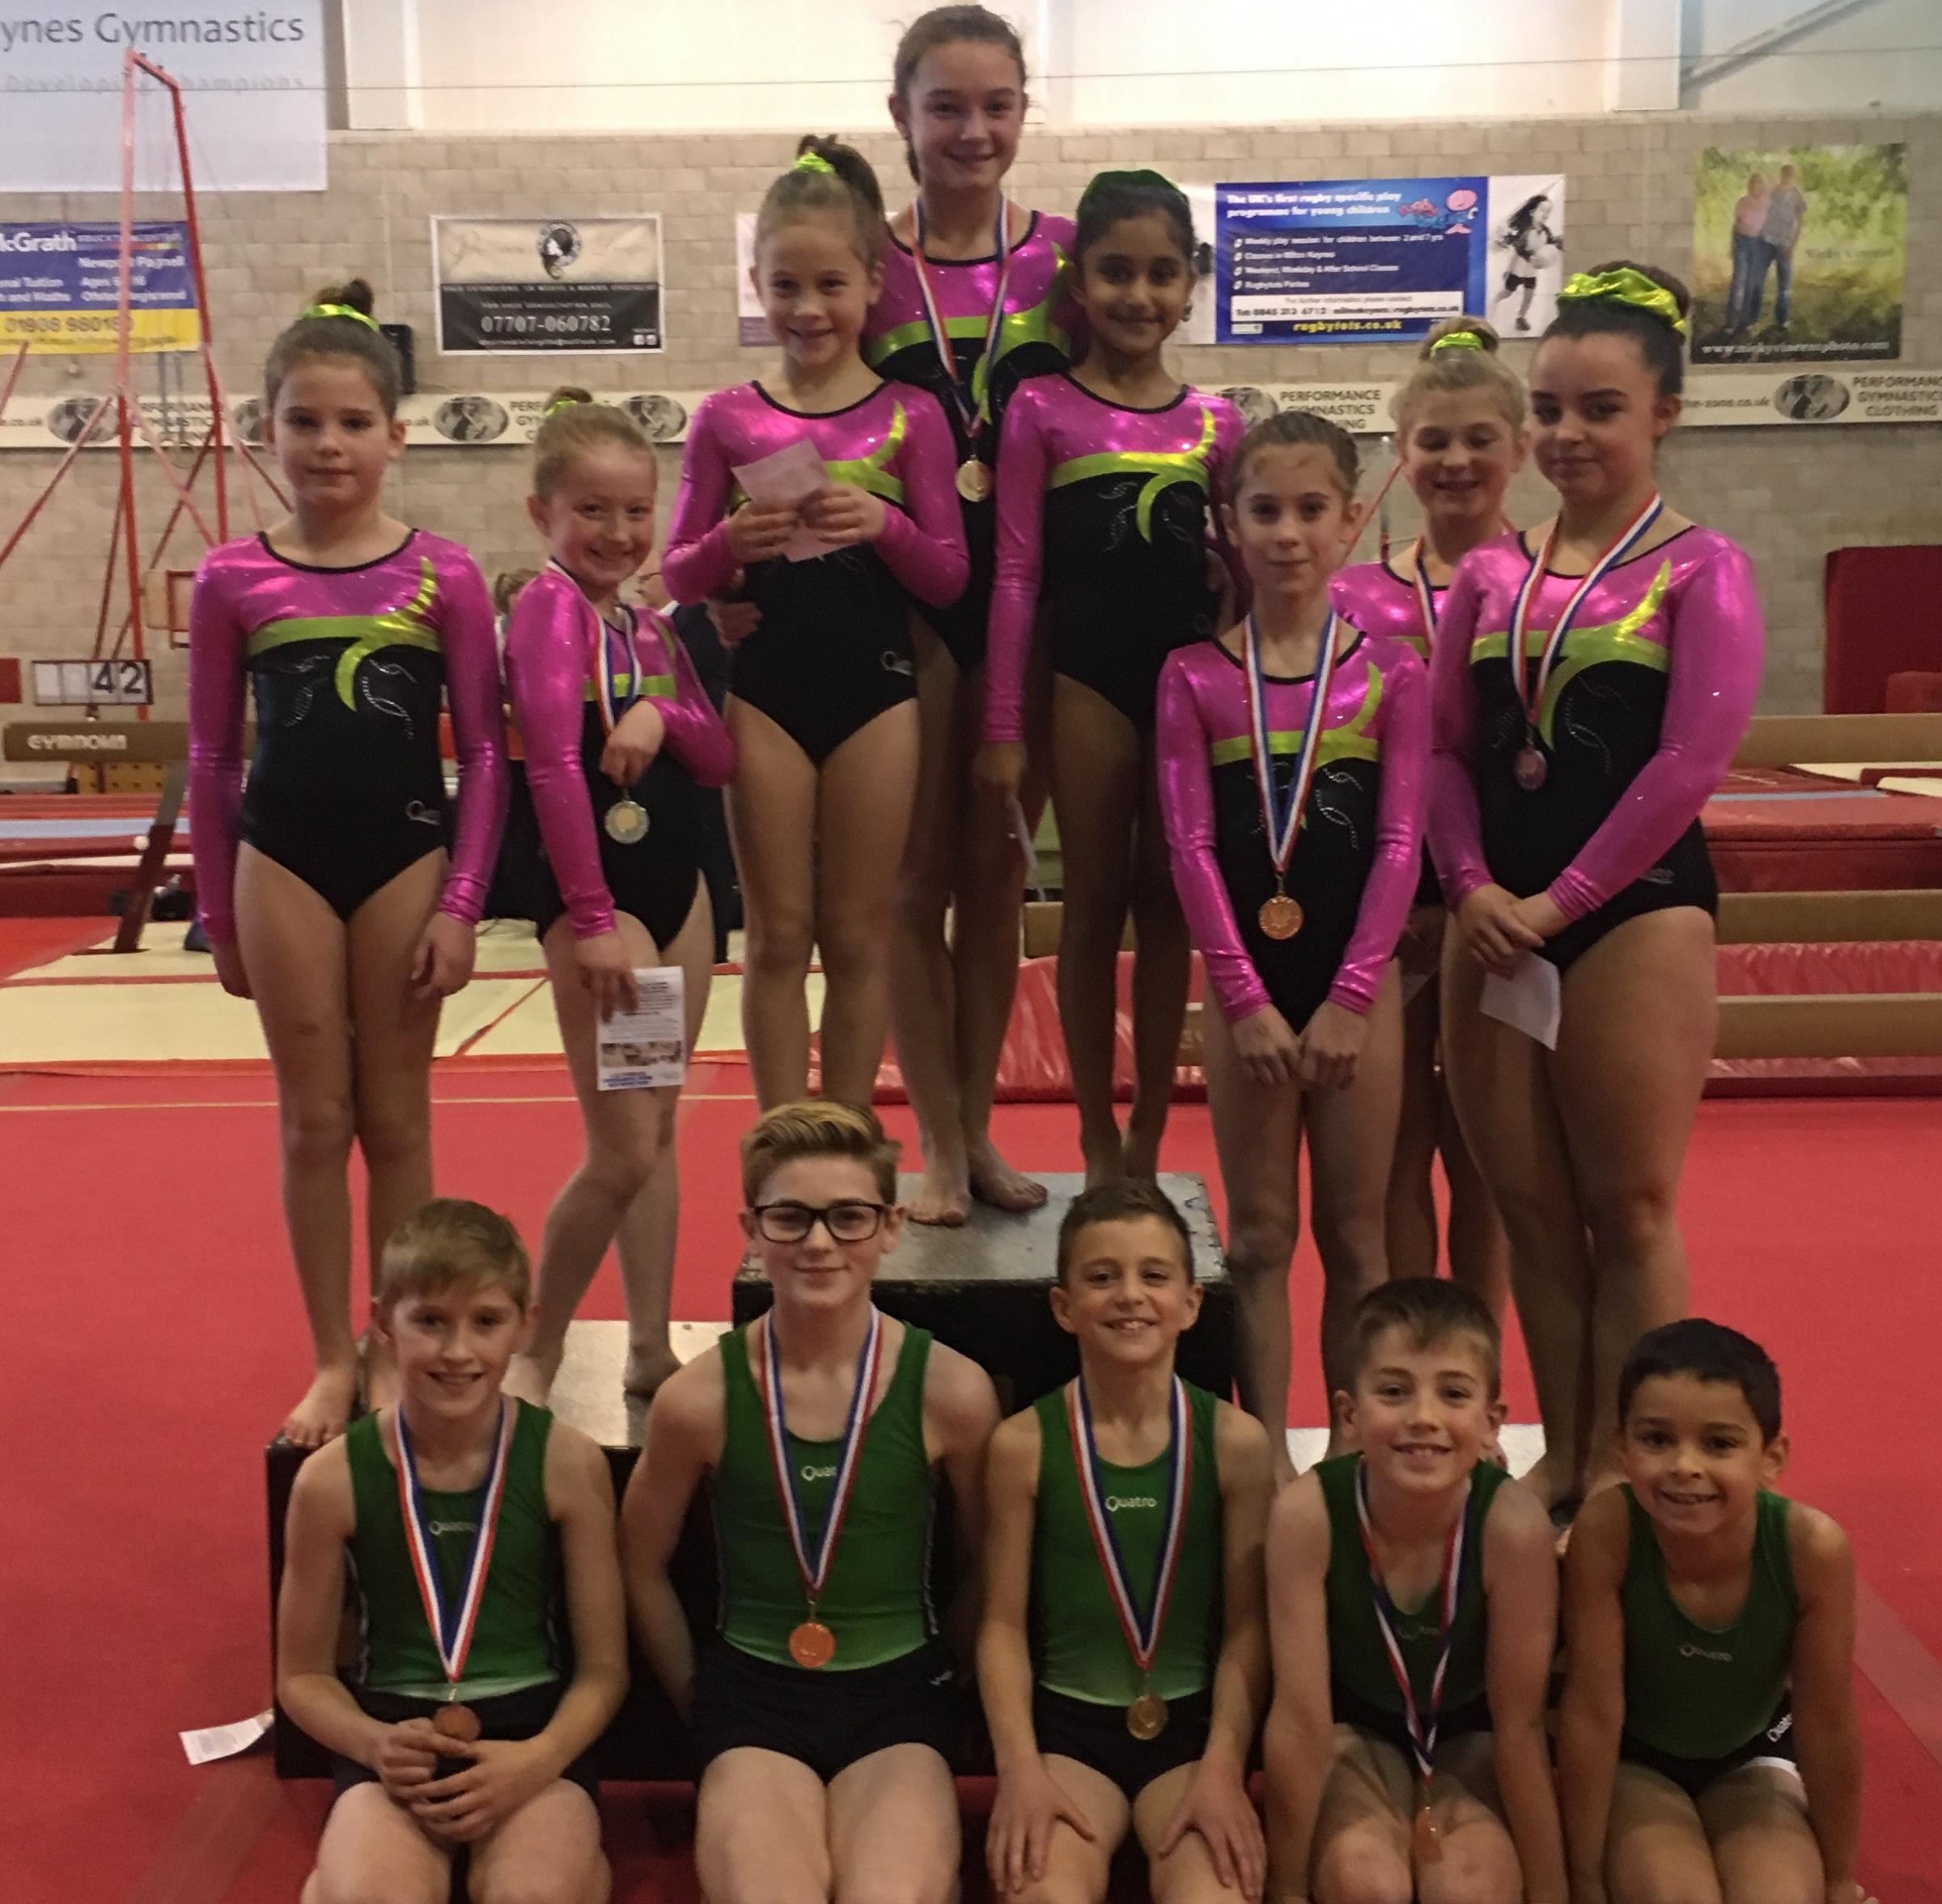 Abingdon's gymnastic tumblers. Back (from left): Mia Selinger, Rhiannon Aston, Stella Colonnese, Lily Titley, Safah Arif, Ellie Powell, Lucy Aspinall, Hollie Kerby. Front: Harry Winsey, Adam Dearman, Benedict Furger, Ryan Geekie, Max May